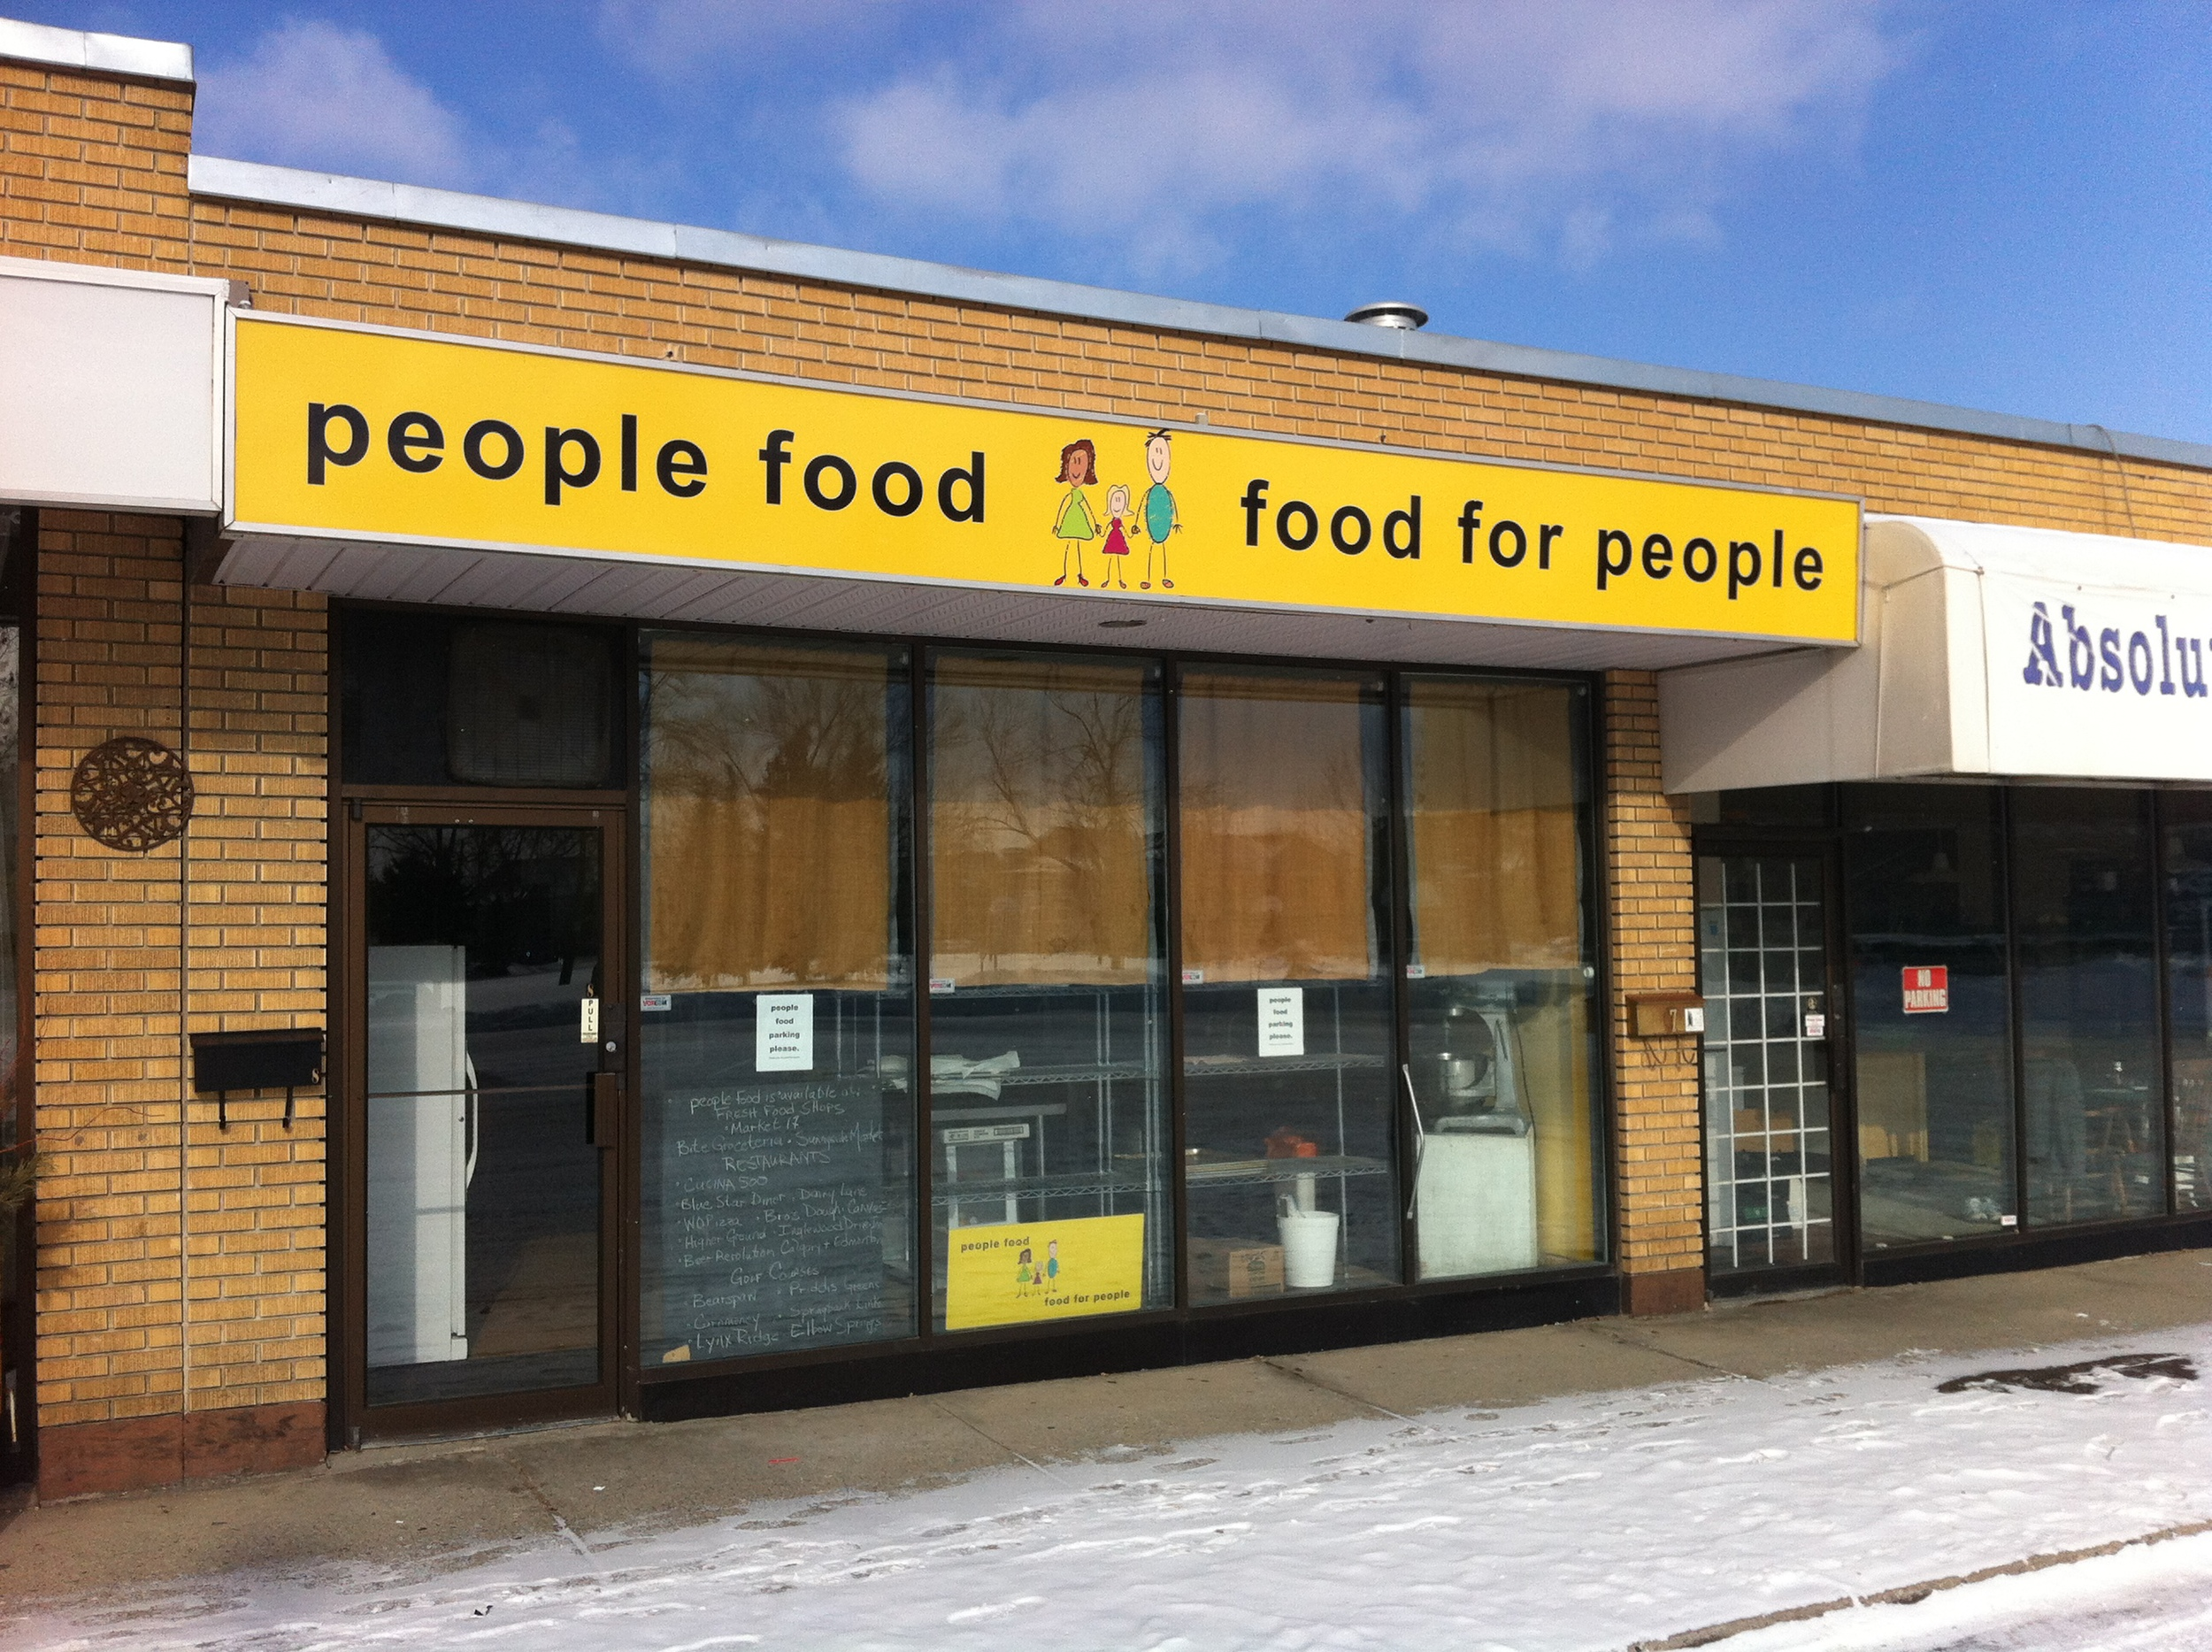 People food kitchen wasn't open when we visited on Saturday and there are no hours, so not sure when or if it is open to the public.  Couldn't find any hours on their website either, but it is a very interesting read and they suggest you call 403-457-1985 to find out what's fresh, and I'd suggest asking when they are open.